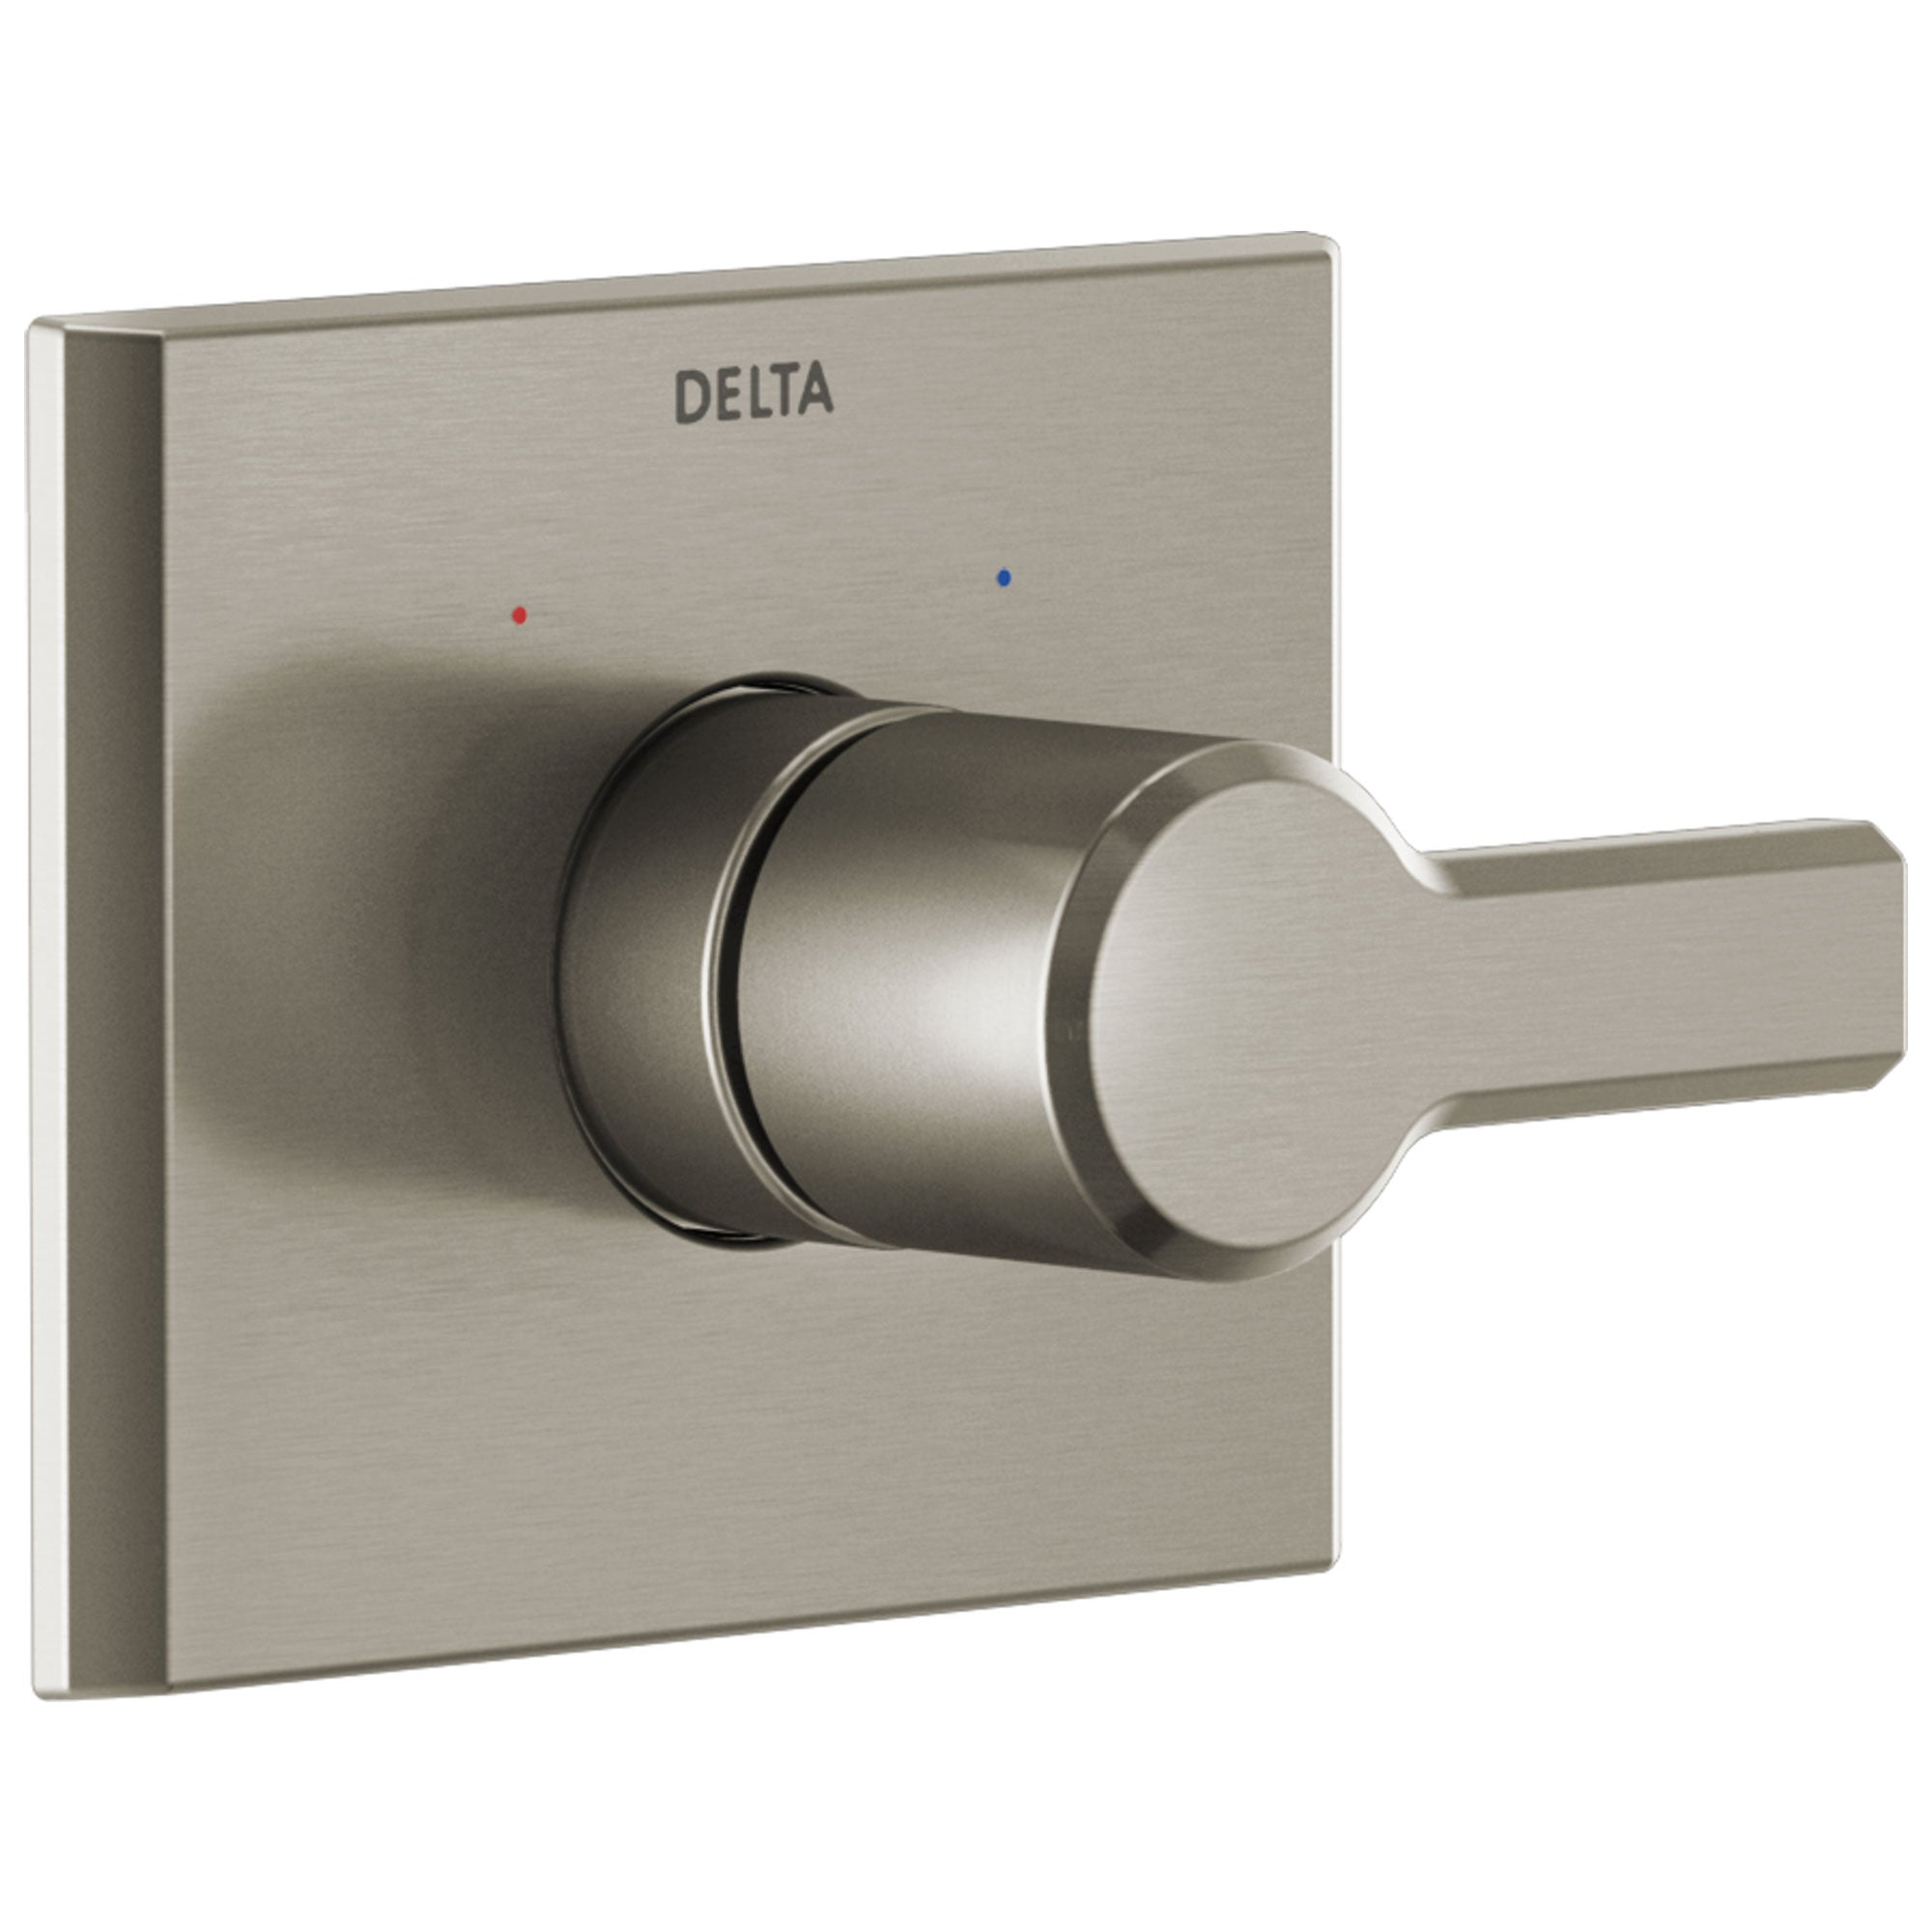 Delta Pivotal Stainless Steel Finish Monitor 14 Series Single Handle Shower Faucet Control Only Includes Cartridge and Valve with Stops D3526V